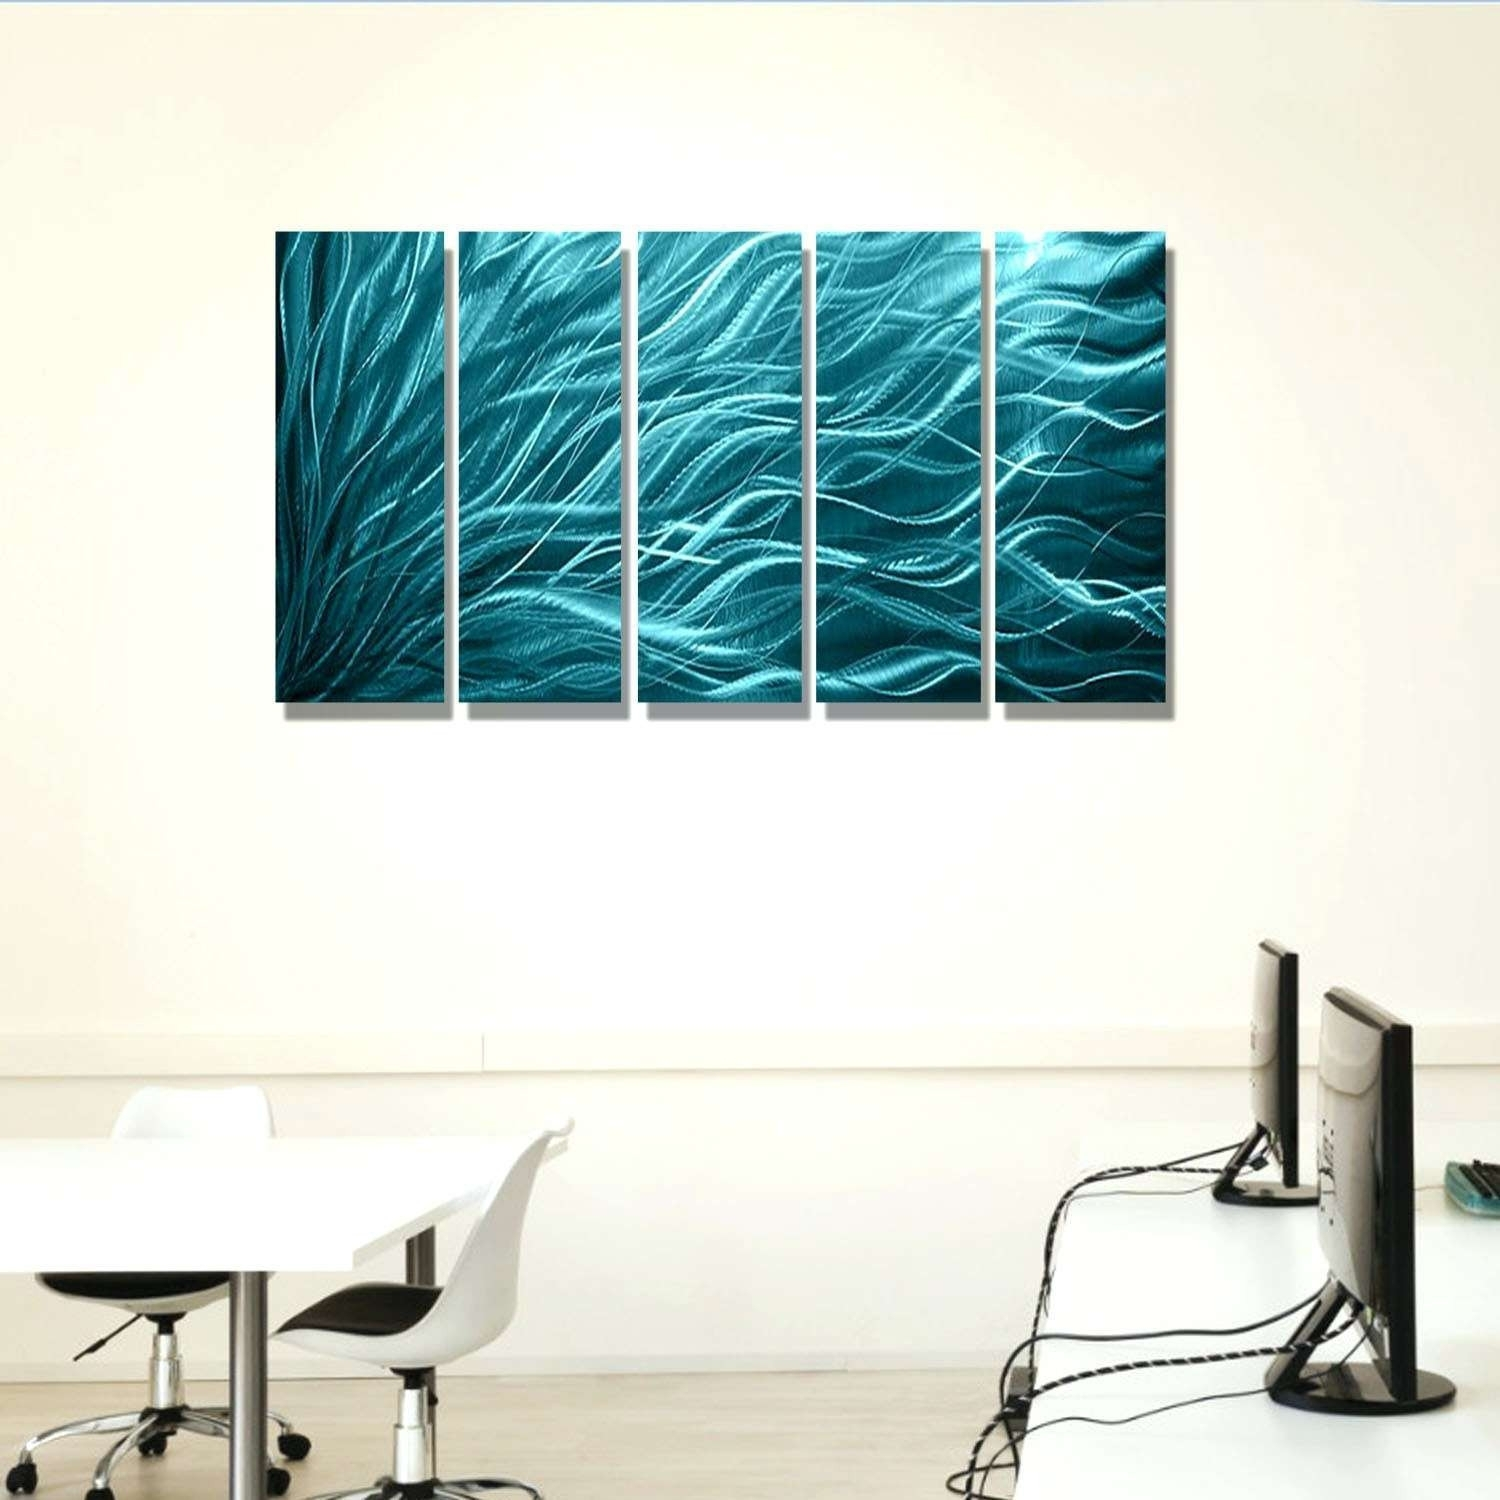 Discount Wall Decor Best Lovely Inexpensive Wall Art Intended For Discount Wall Art (View 17 of 20)